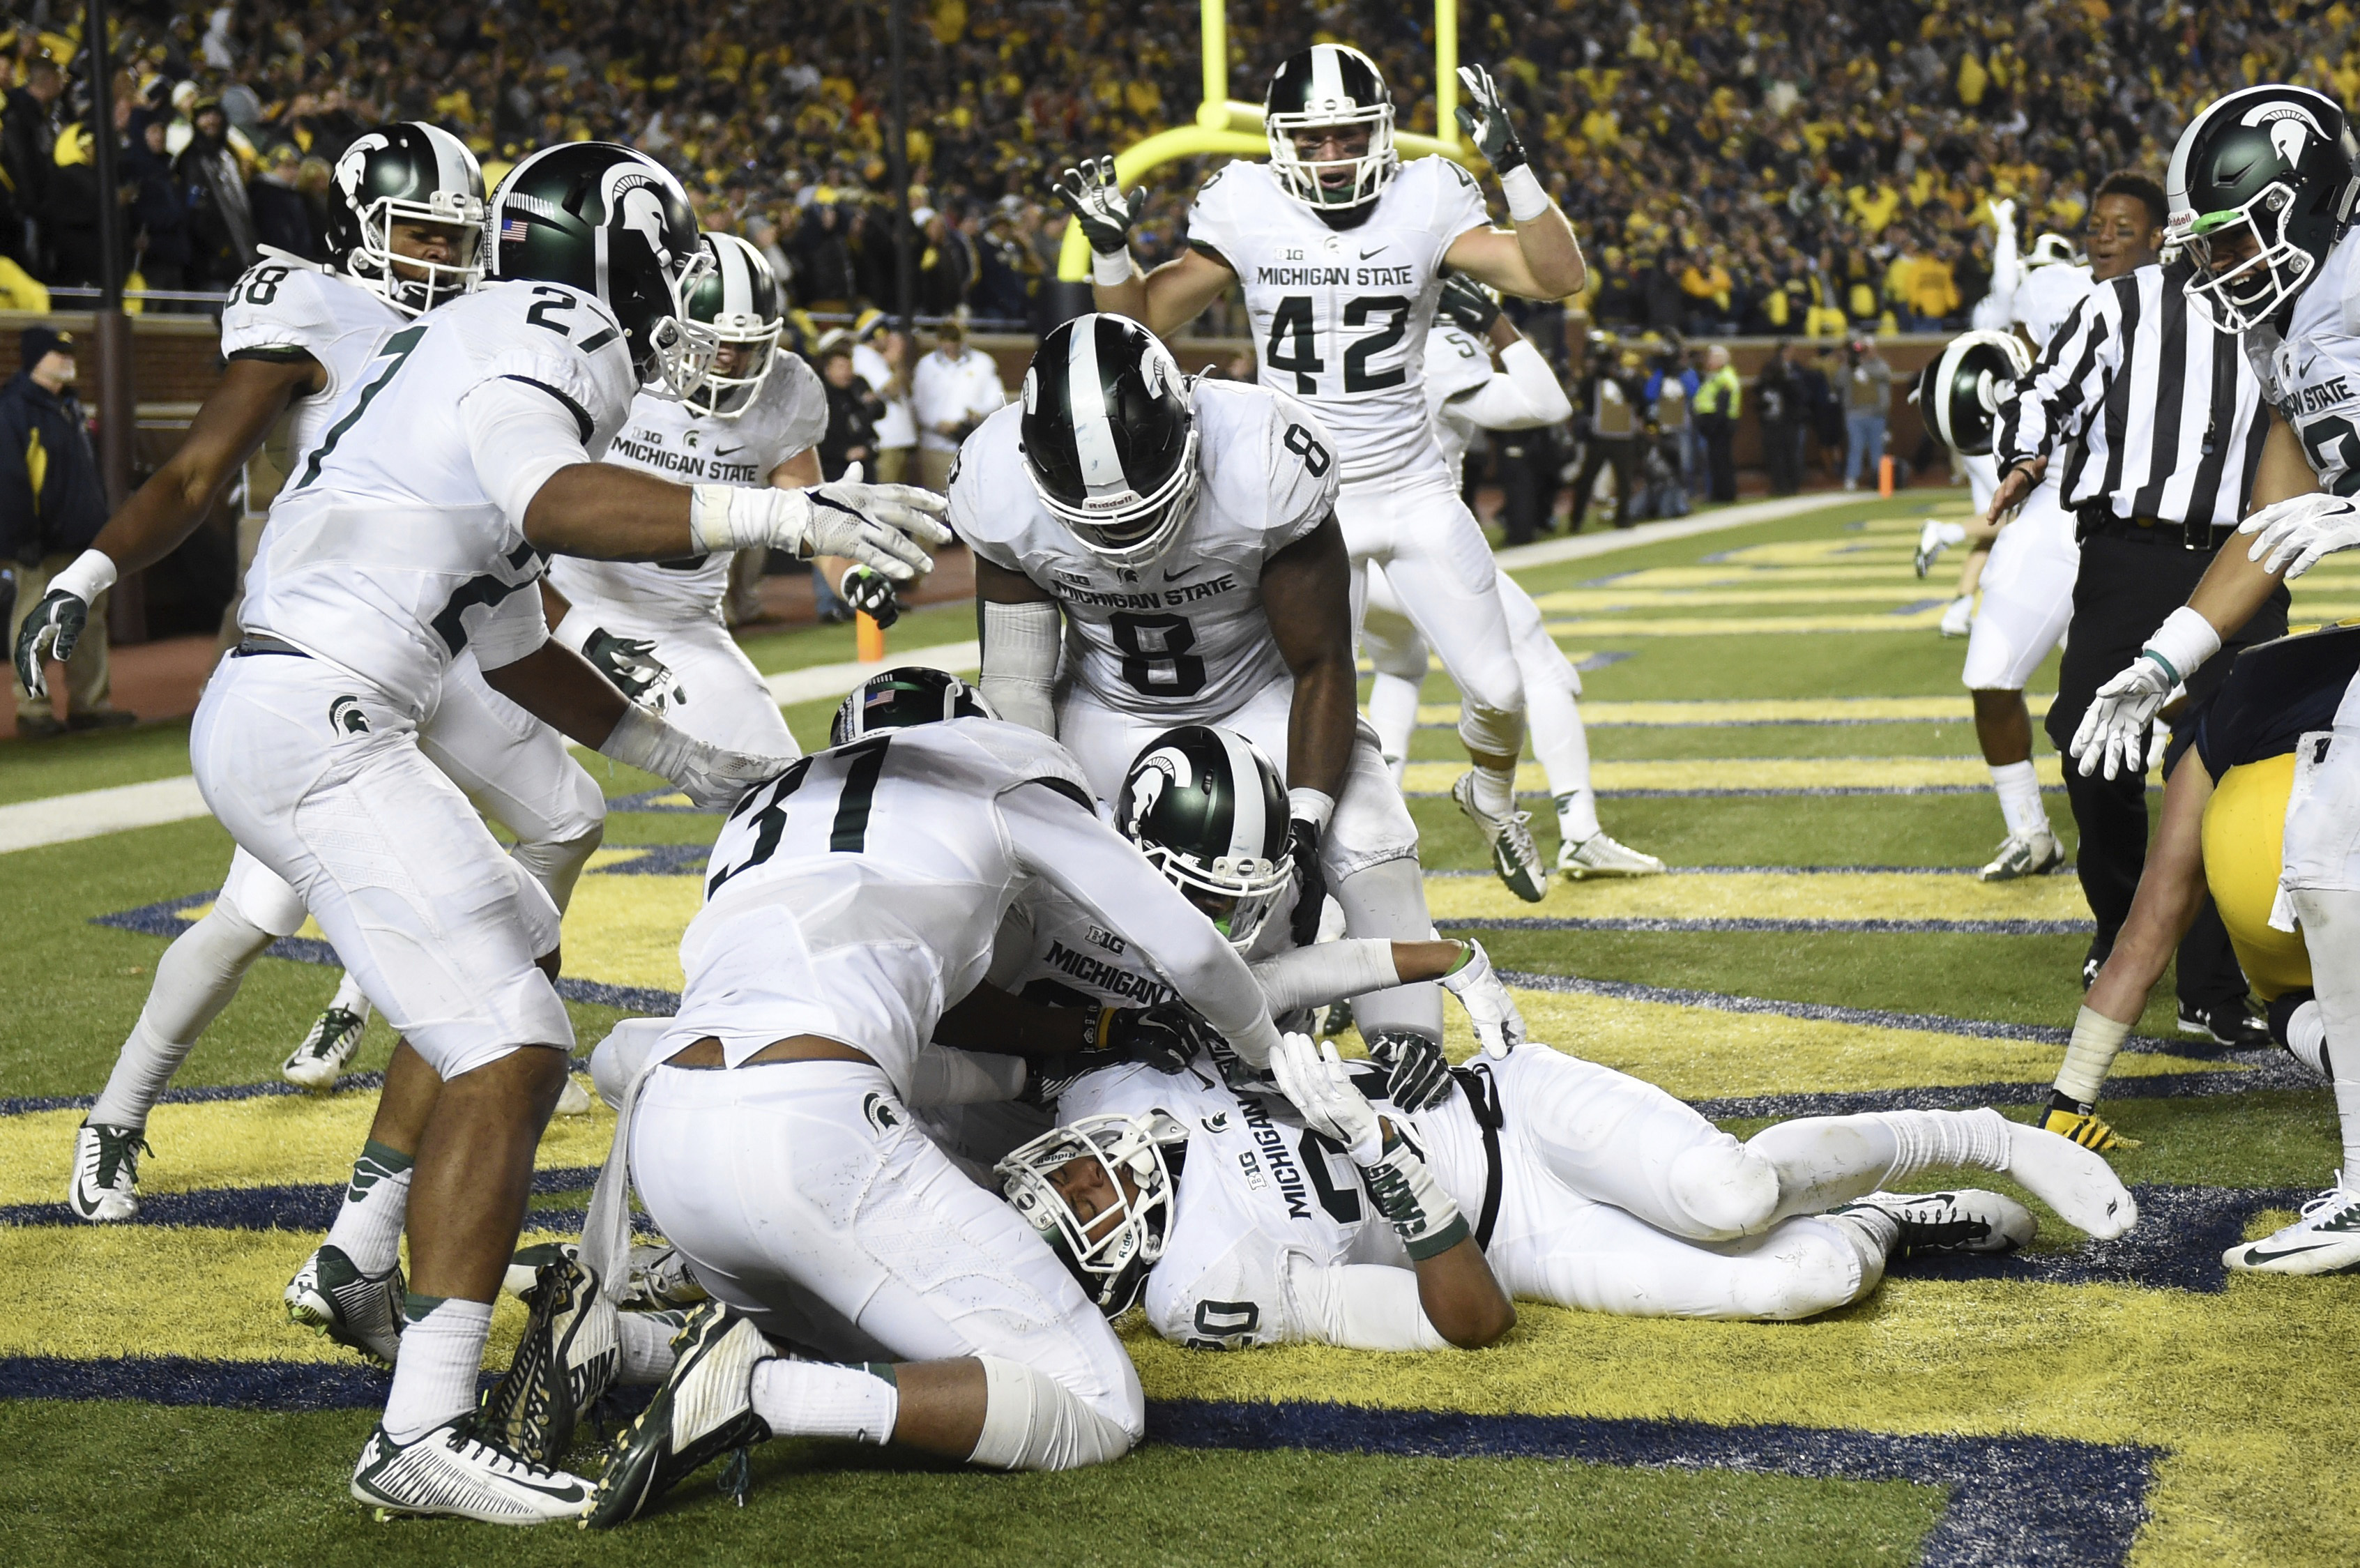 FILE - In this Oct. 17, 2015, file photo, Michigan State defensive back Jalen Watts-Jackson (20) is surrounded by teammates celebrating after he recovered a fumble on a punt in the closing seconds of the second half and returned it for a touchdown during